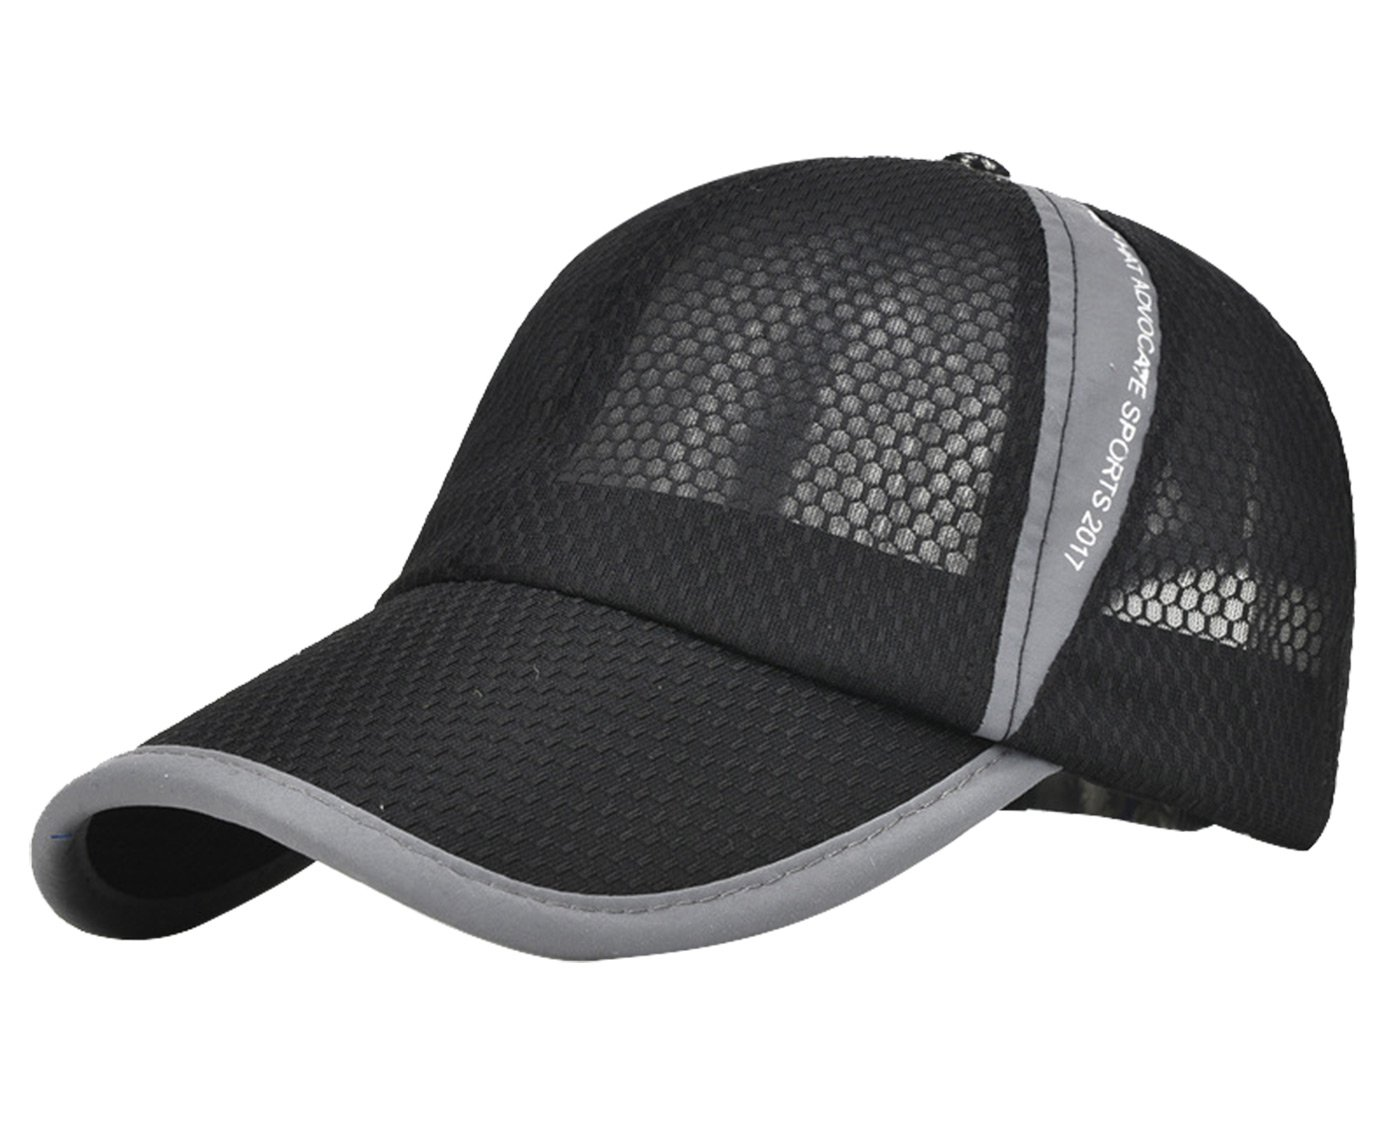 80d106c87 Amazon.com: Men's Women's Peaked Mesh Sunscreen Cap Sports Hats for Fishing  Tennis Baseball Beach Board Running Hiking Travelling Outdoor Light Black:  ...